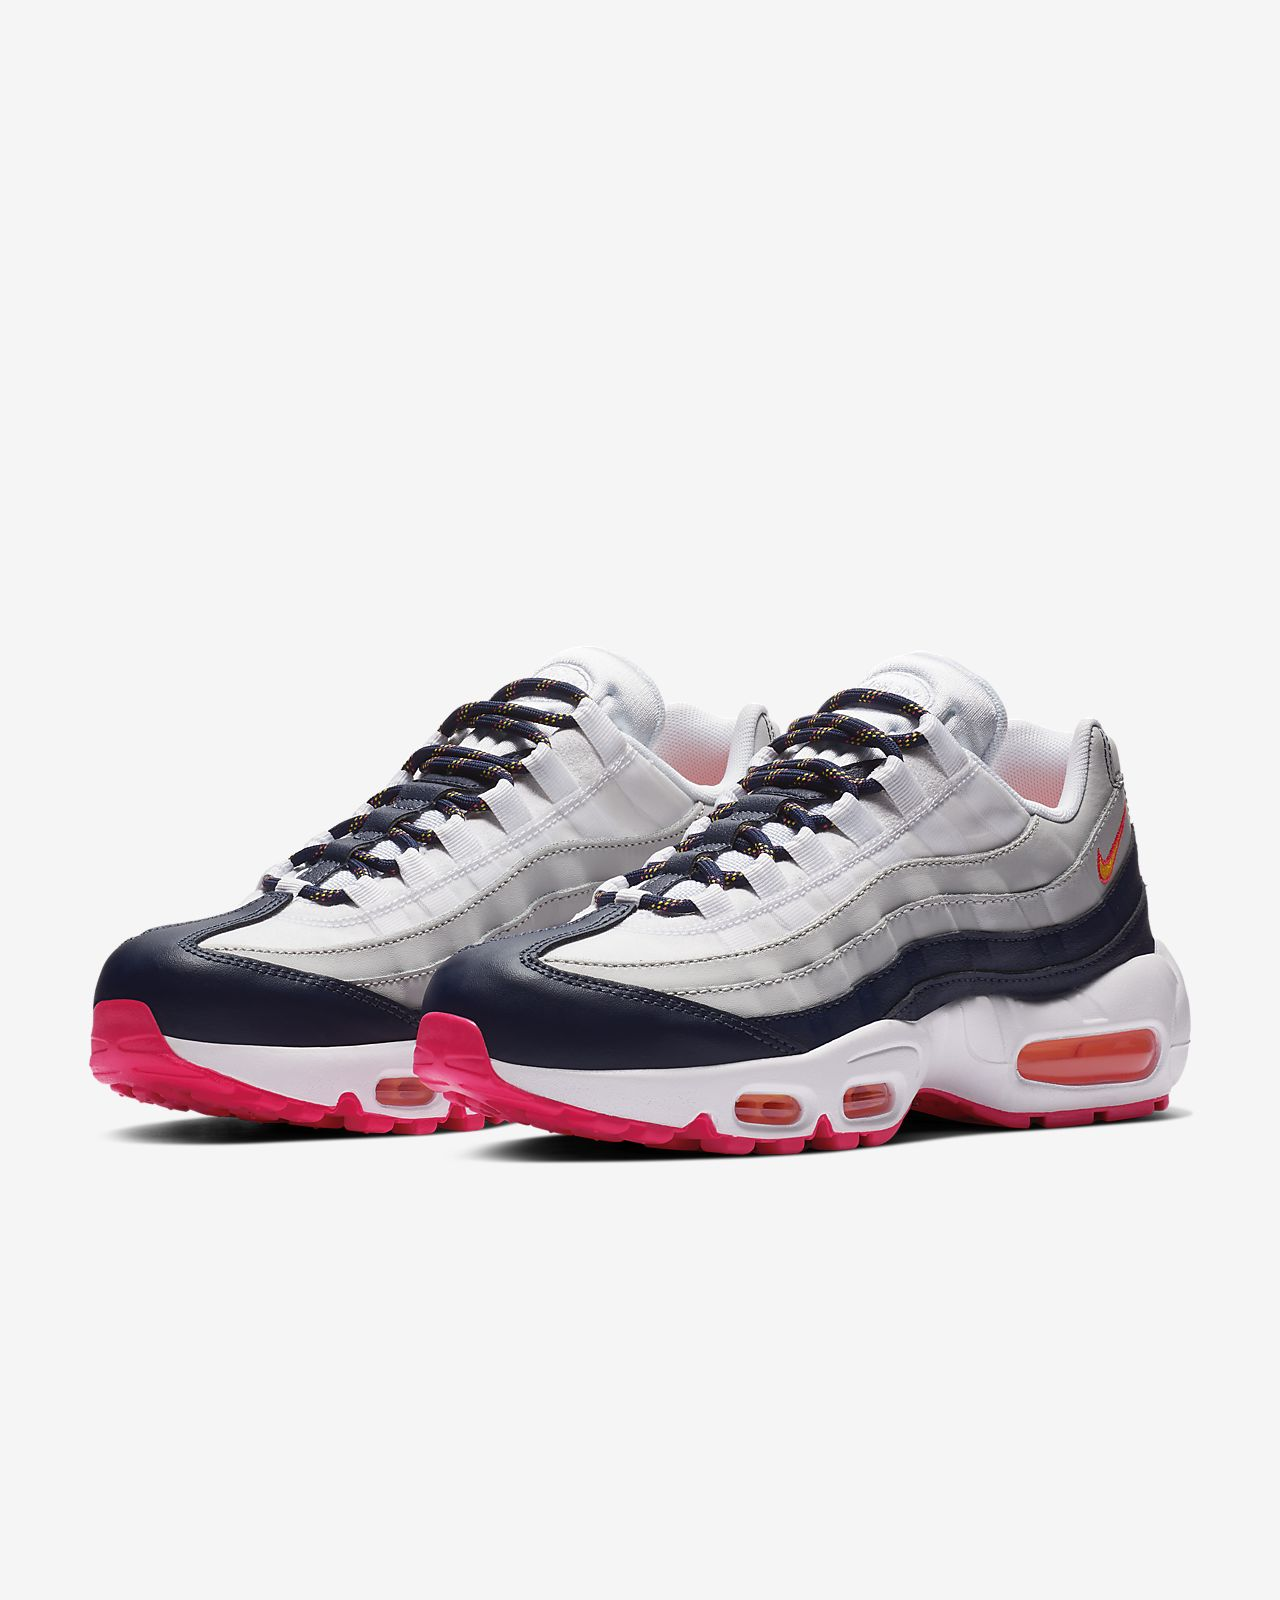 huge discount 404ed b81f0 ... Nike Air Max 95 Premium Women s Shoe